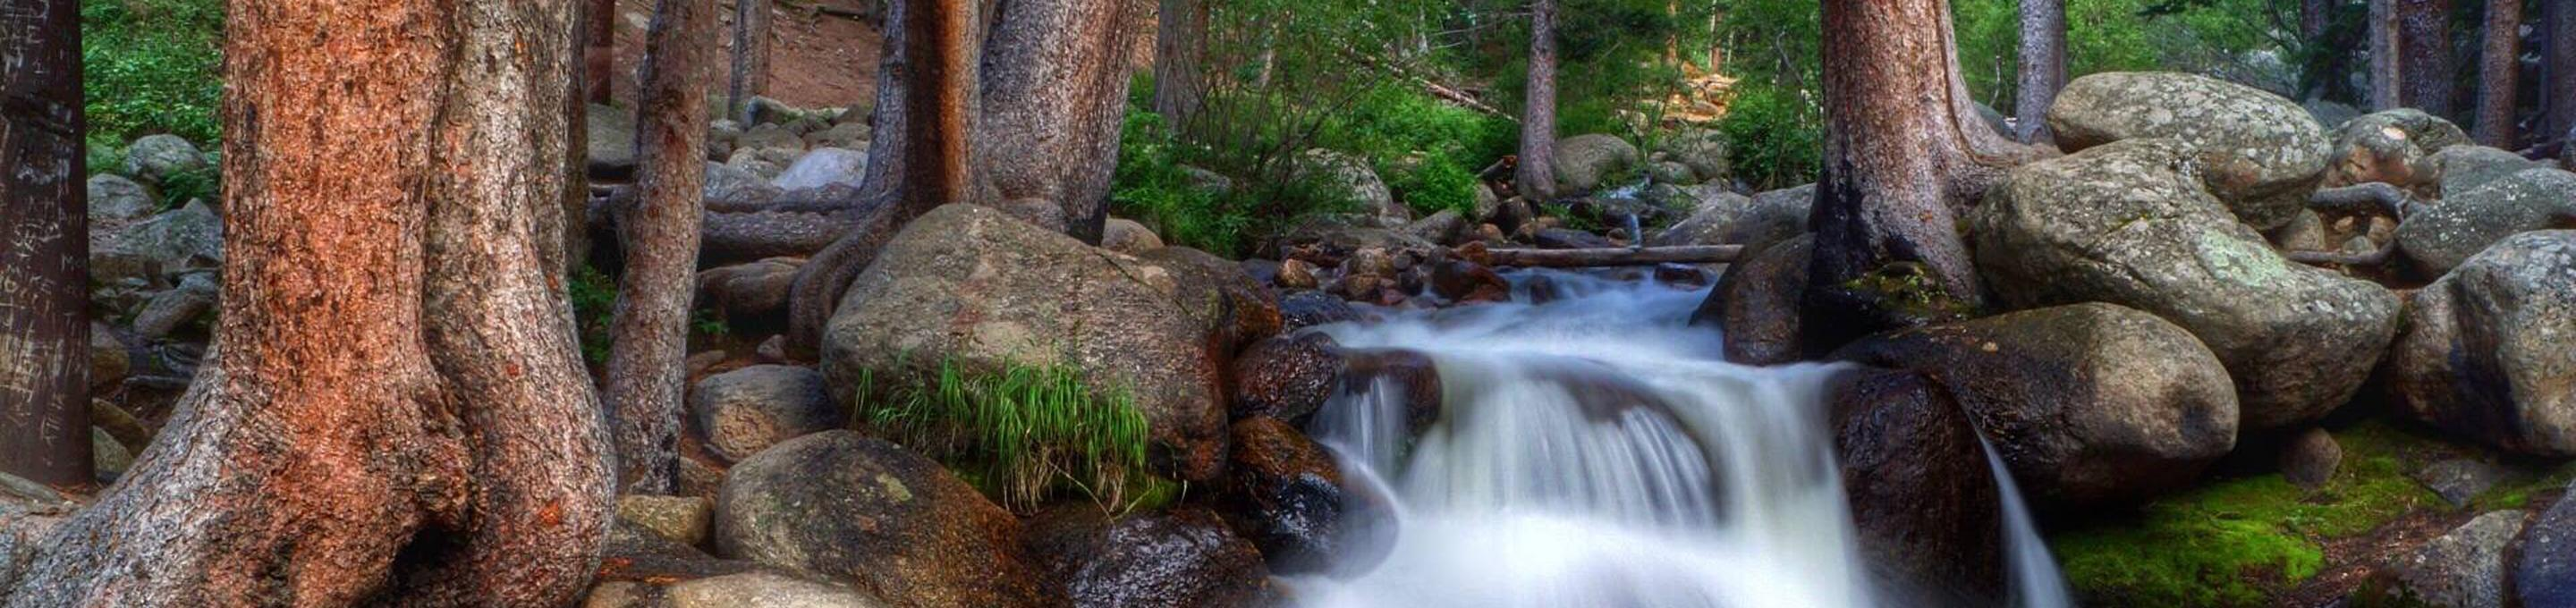 A creek flowing in the Arapaho National Forest